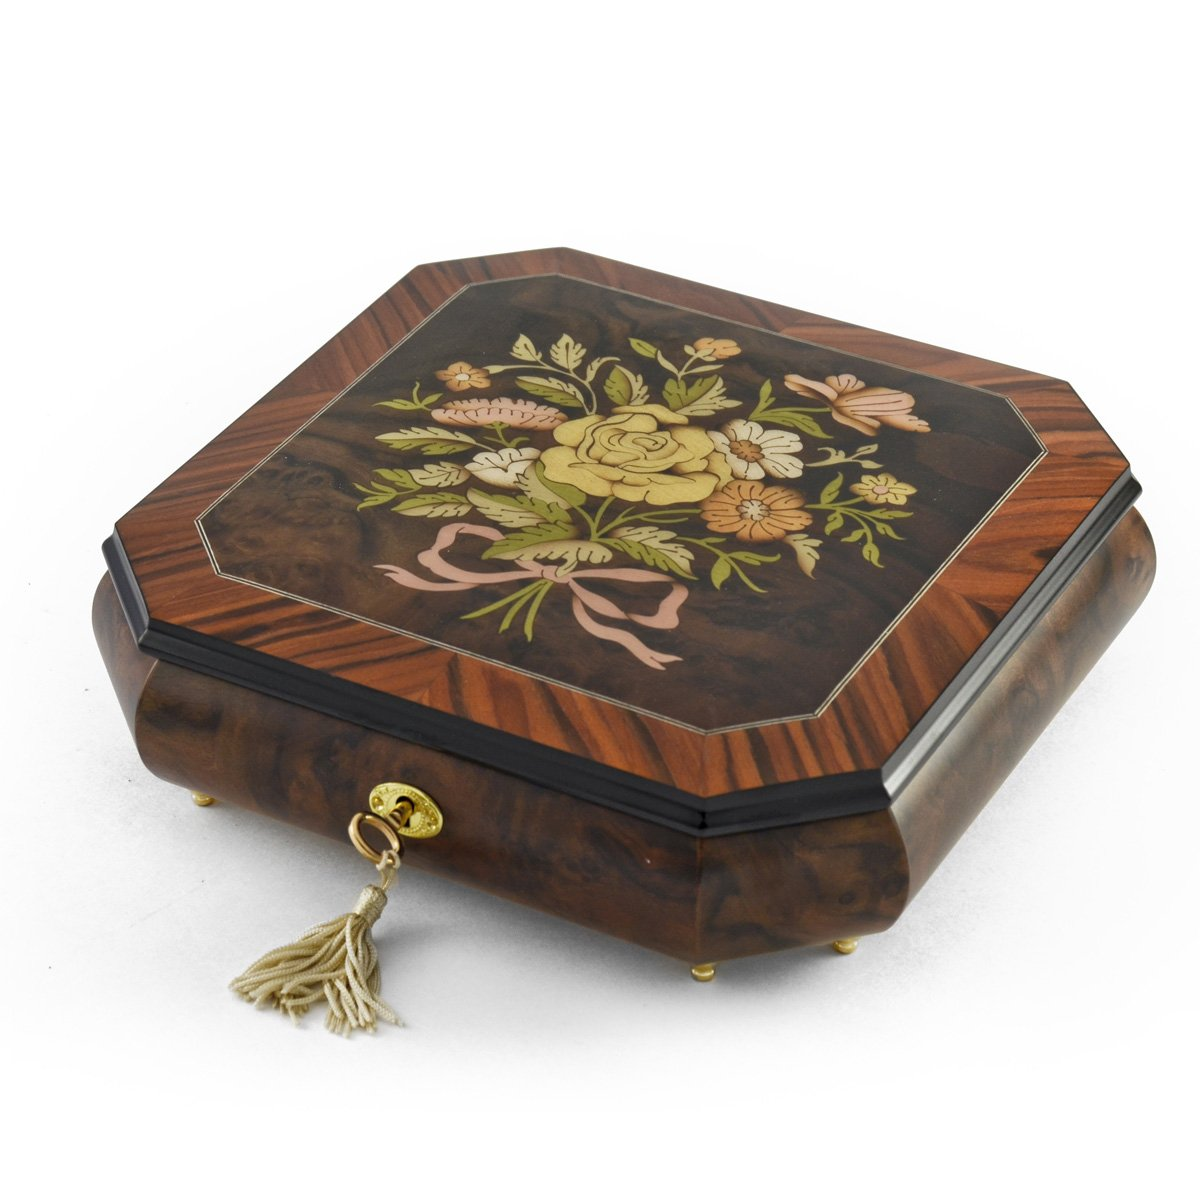 Charming Handcrafted Octagonal Italian Music Box with Floral Bouquet Inlay - Through the Eyes of Love - NEW